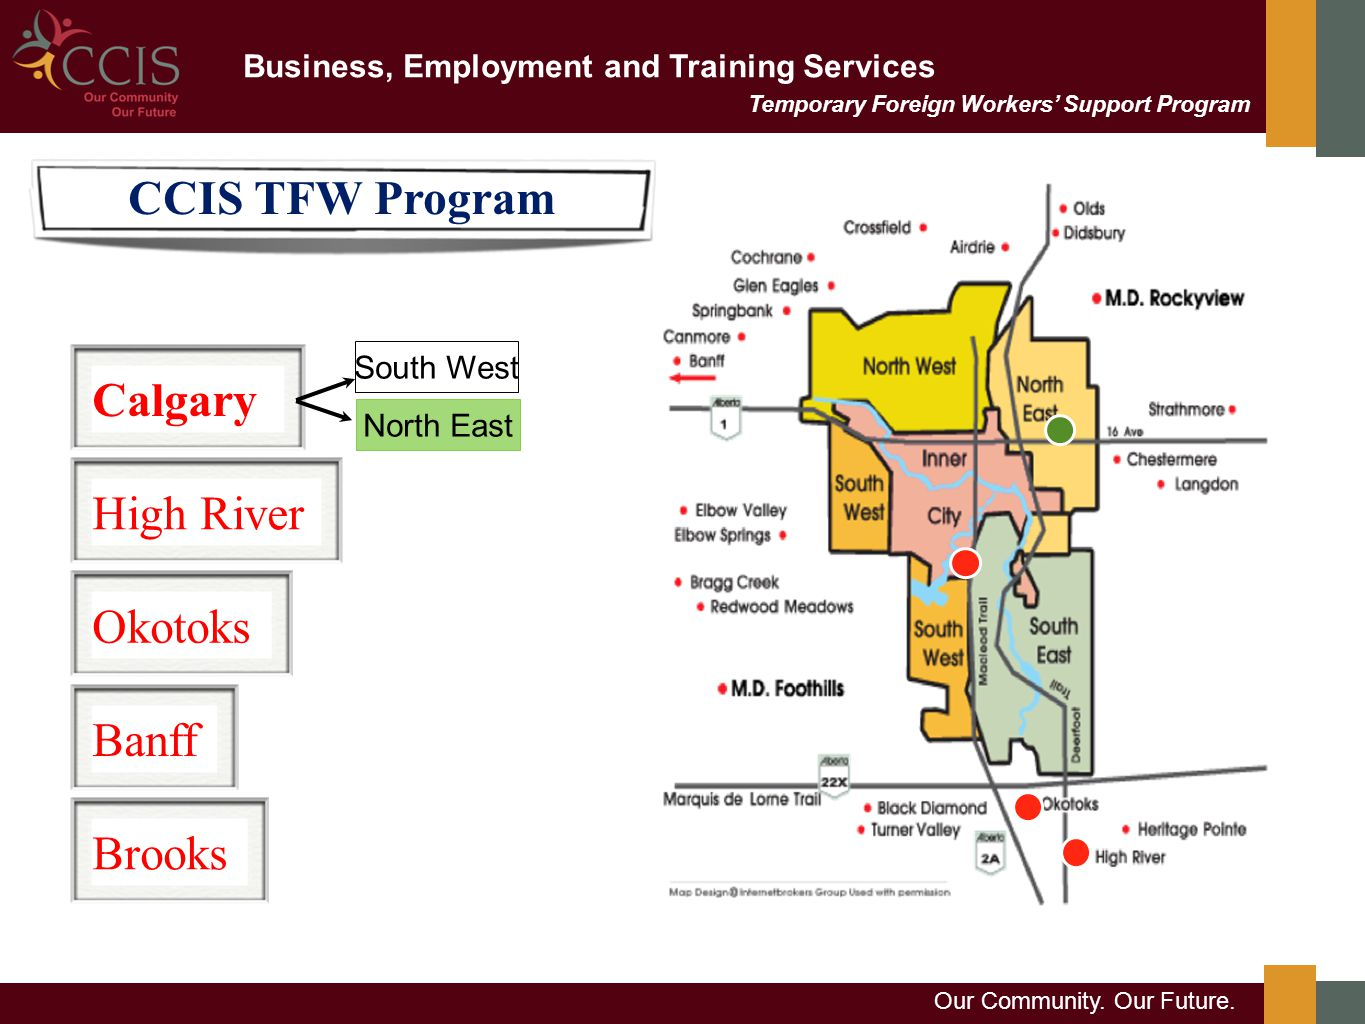 Business, Employment and Training Services Our Community. Our Future. CalgaryHigh RiverOkotoksBanffBrooks North East South West CCIS TFW Program Tempo